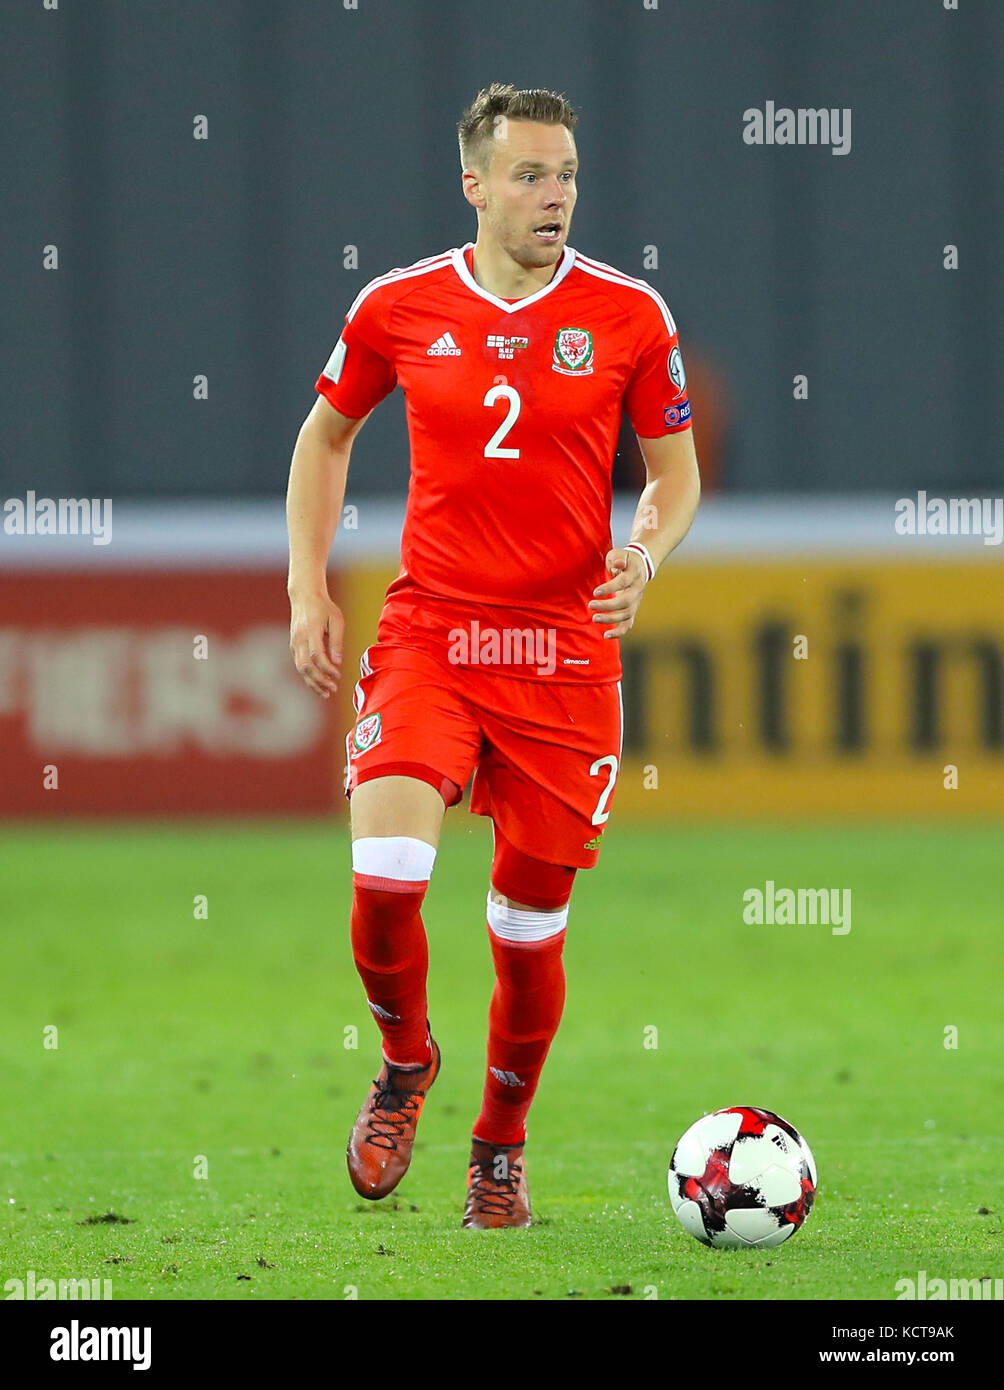 Wales Chris Ter During The 2018 Fifa World Cup Qualifying Group D Match At Boris Paichadze Dinamo Arena Tbilisi Press Association Photo